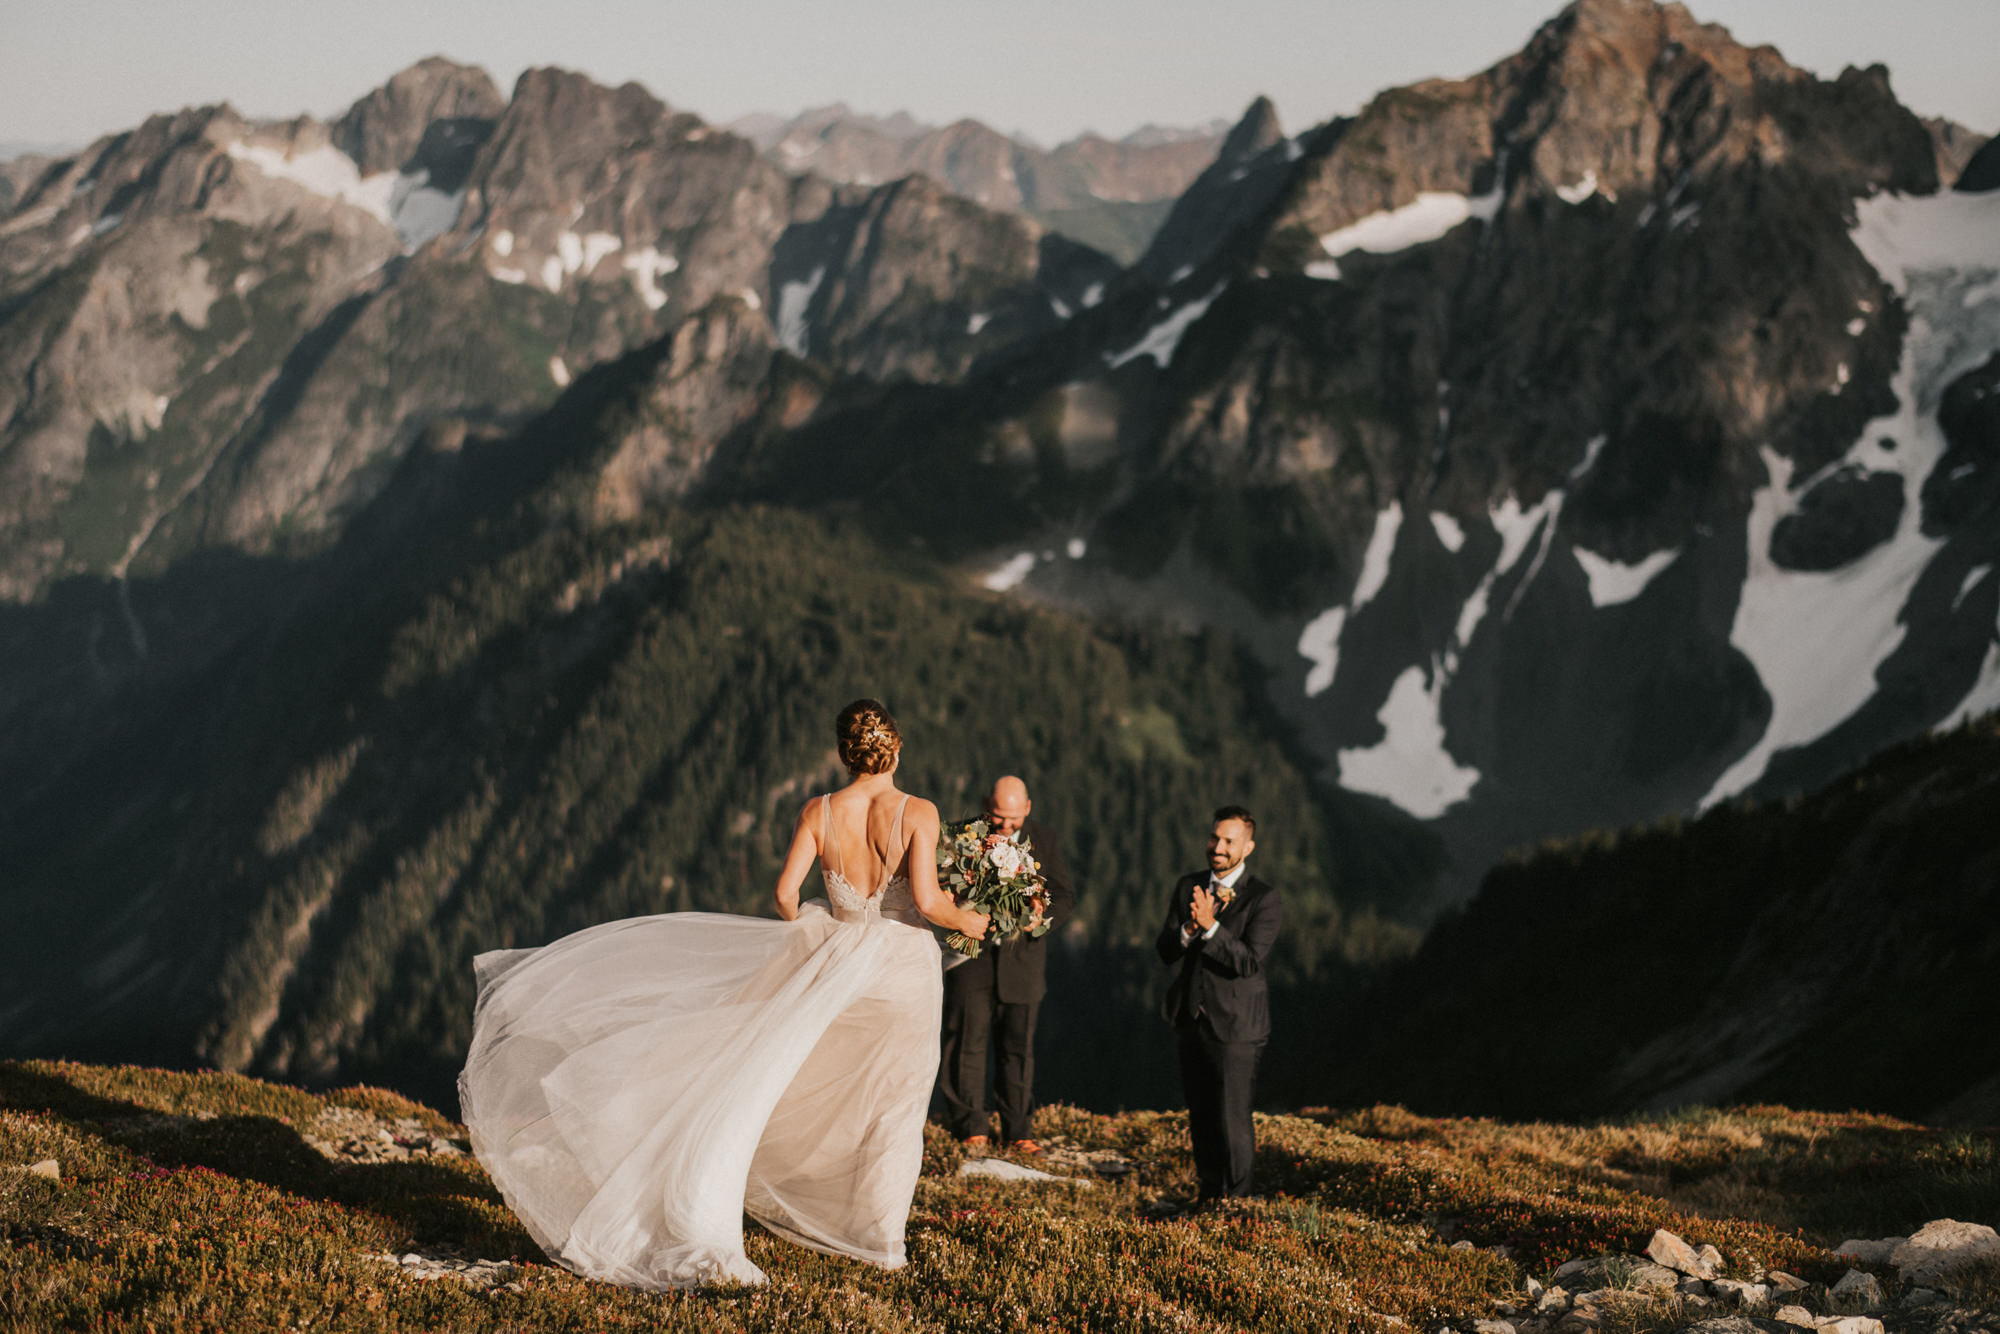 North Cascades moutaintop wedding ceremony - photo by Nick plus Danee